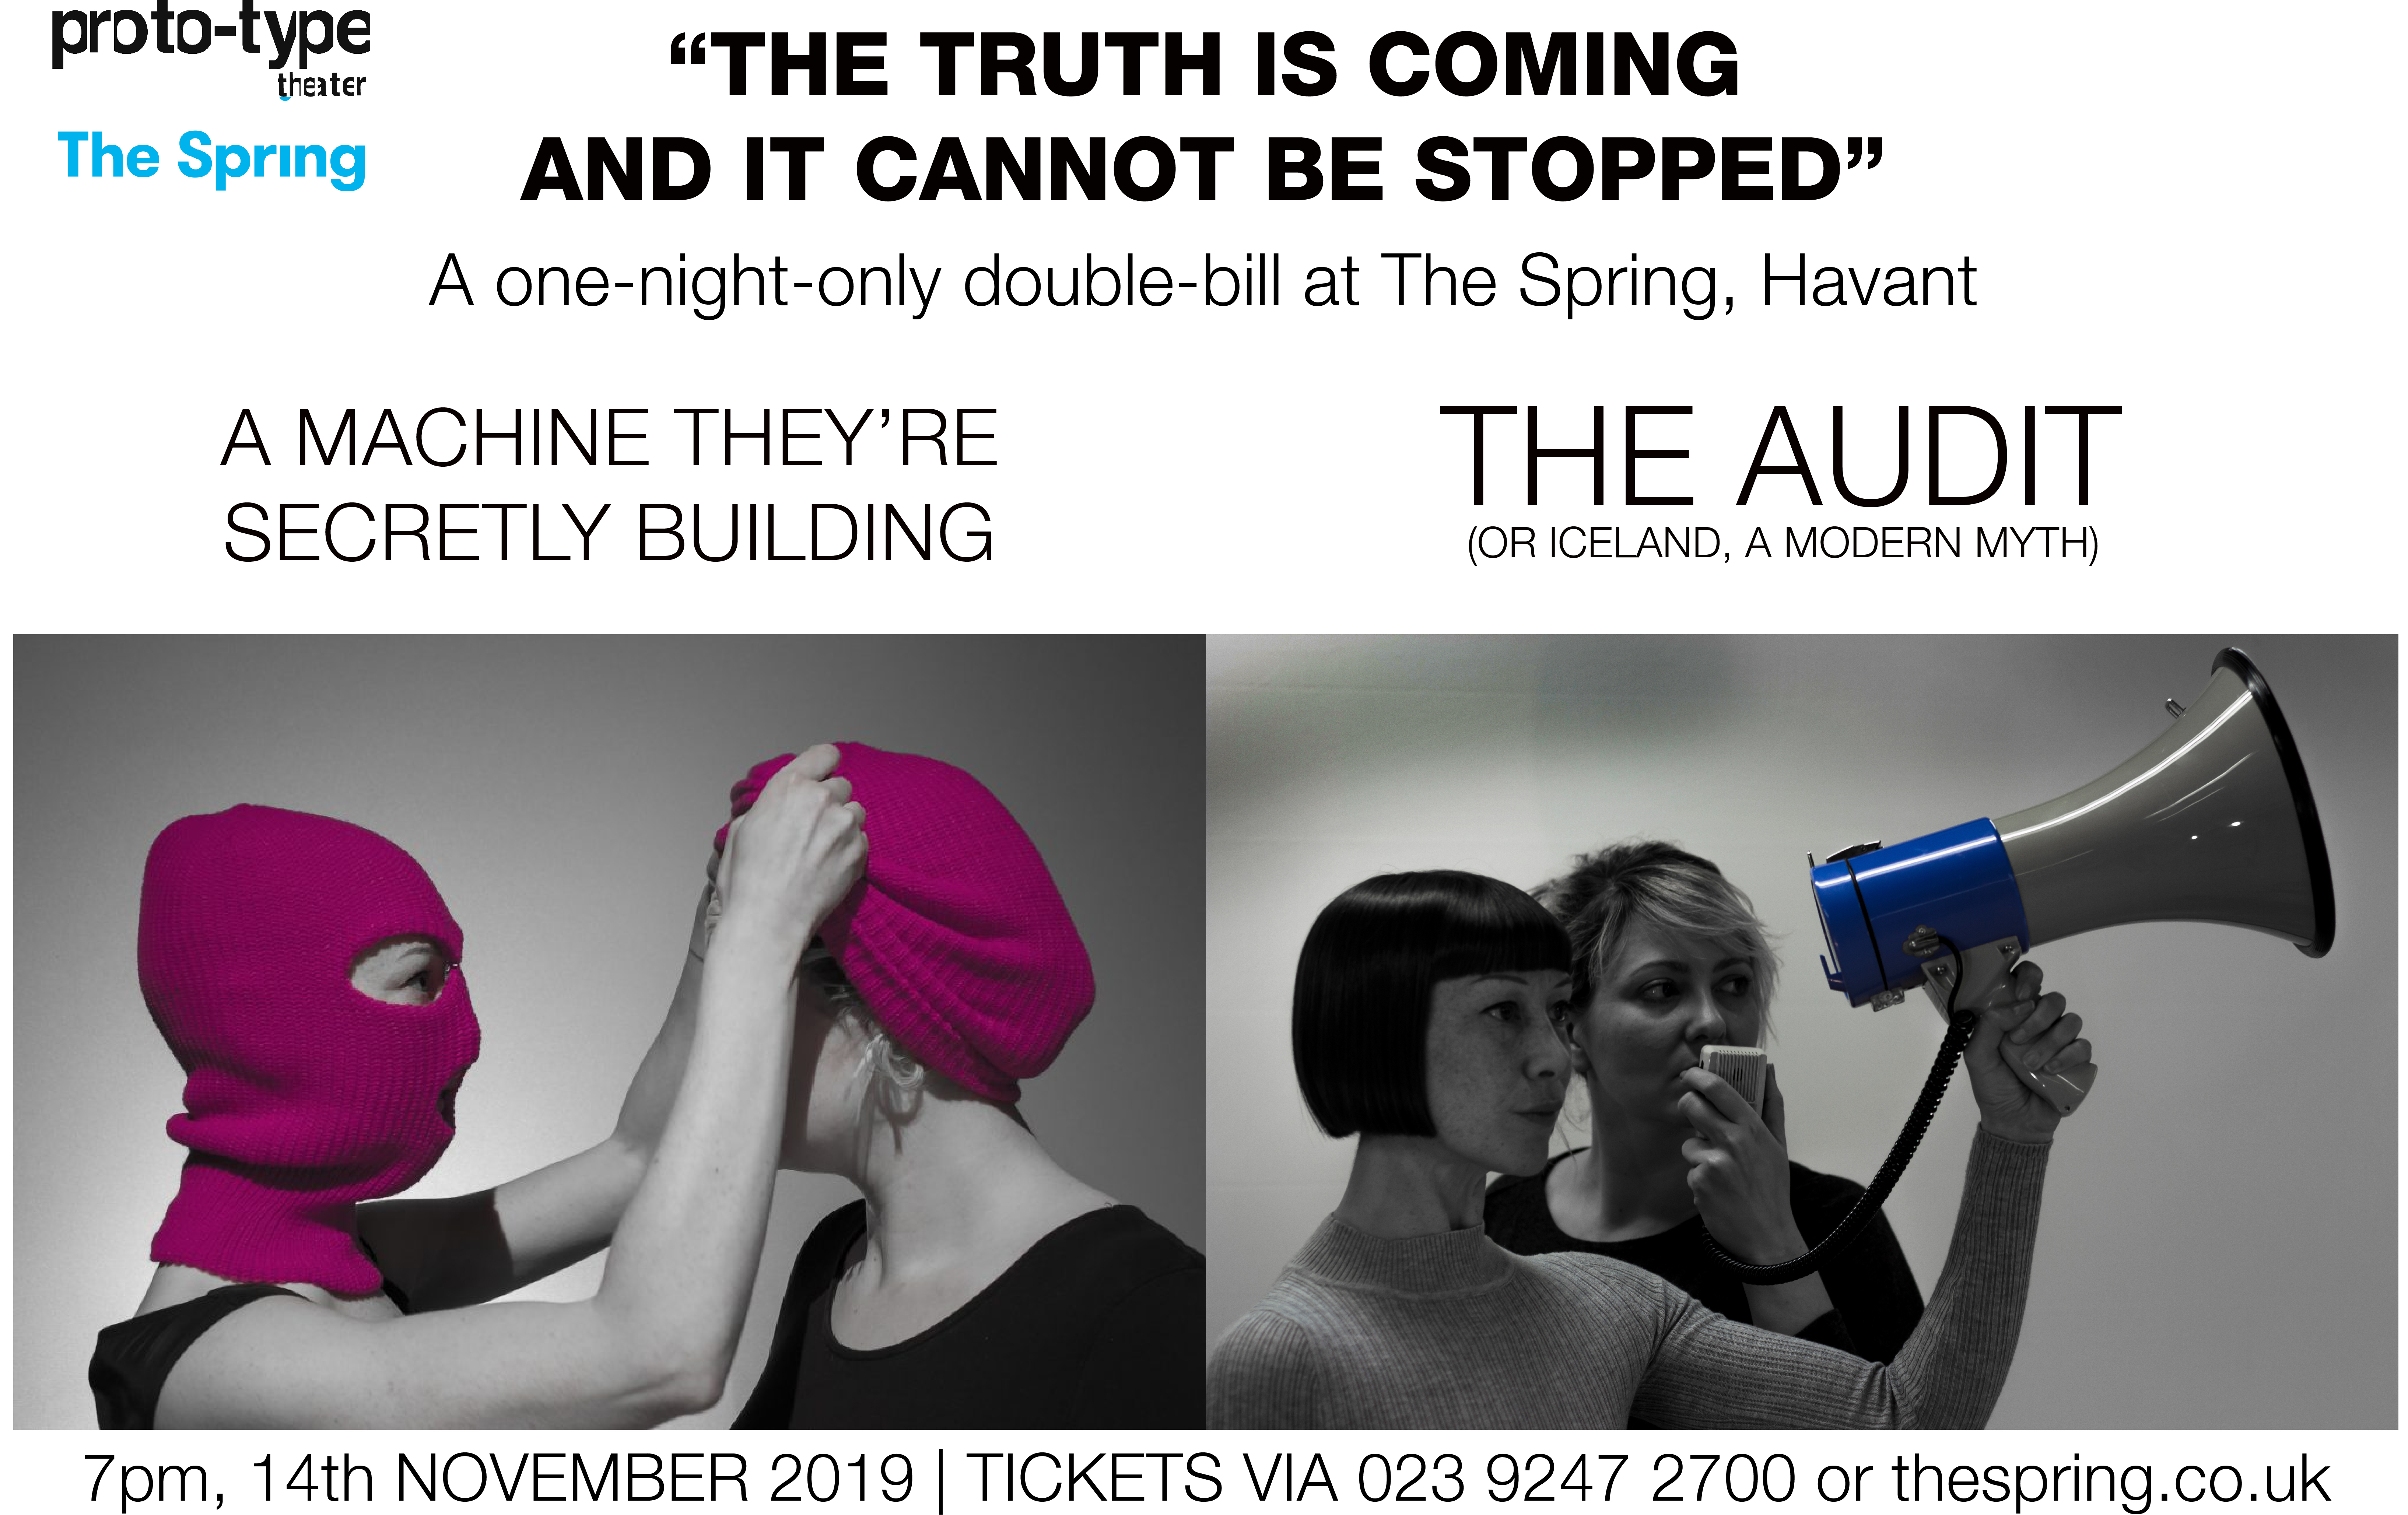 http://thespring.co.uk/whats-on/theatre/the-truth-is-coming-and-it-cannot-be-stopped/